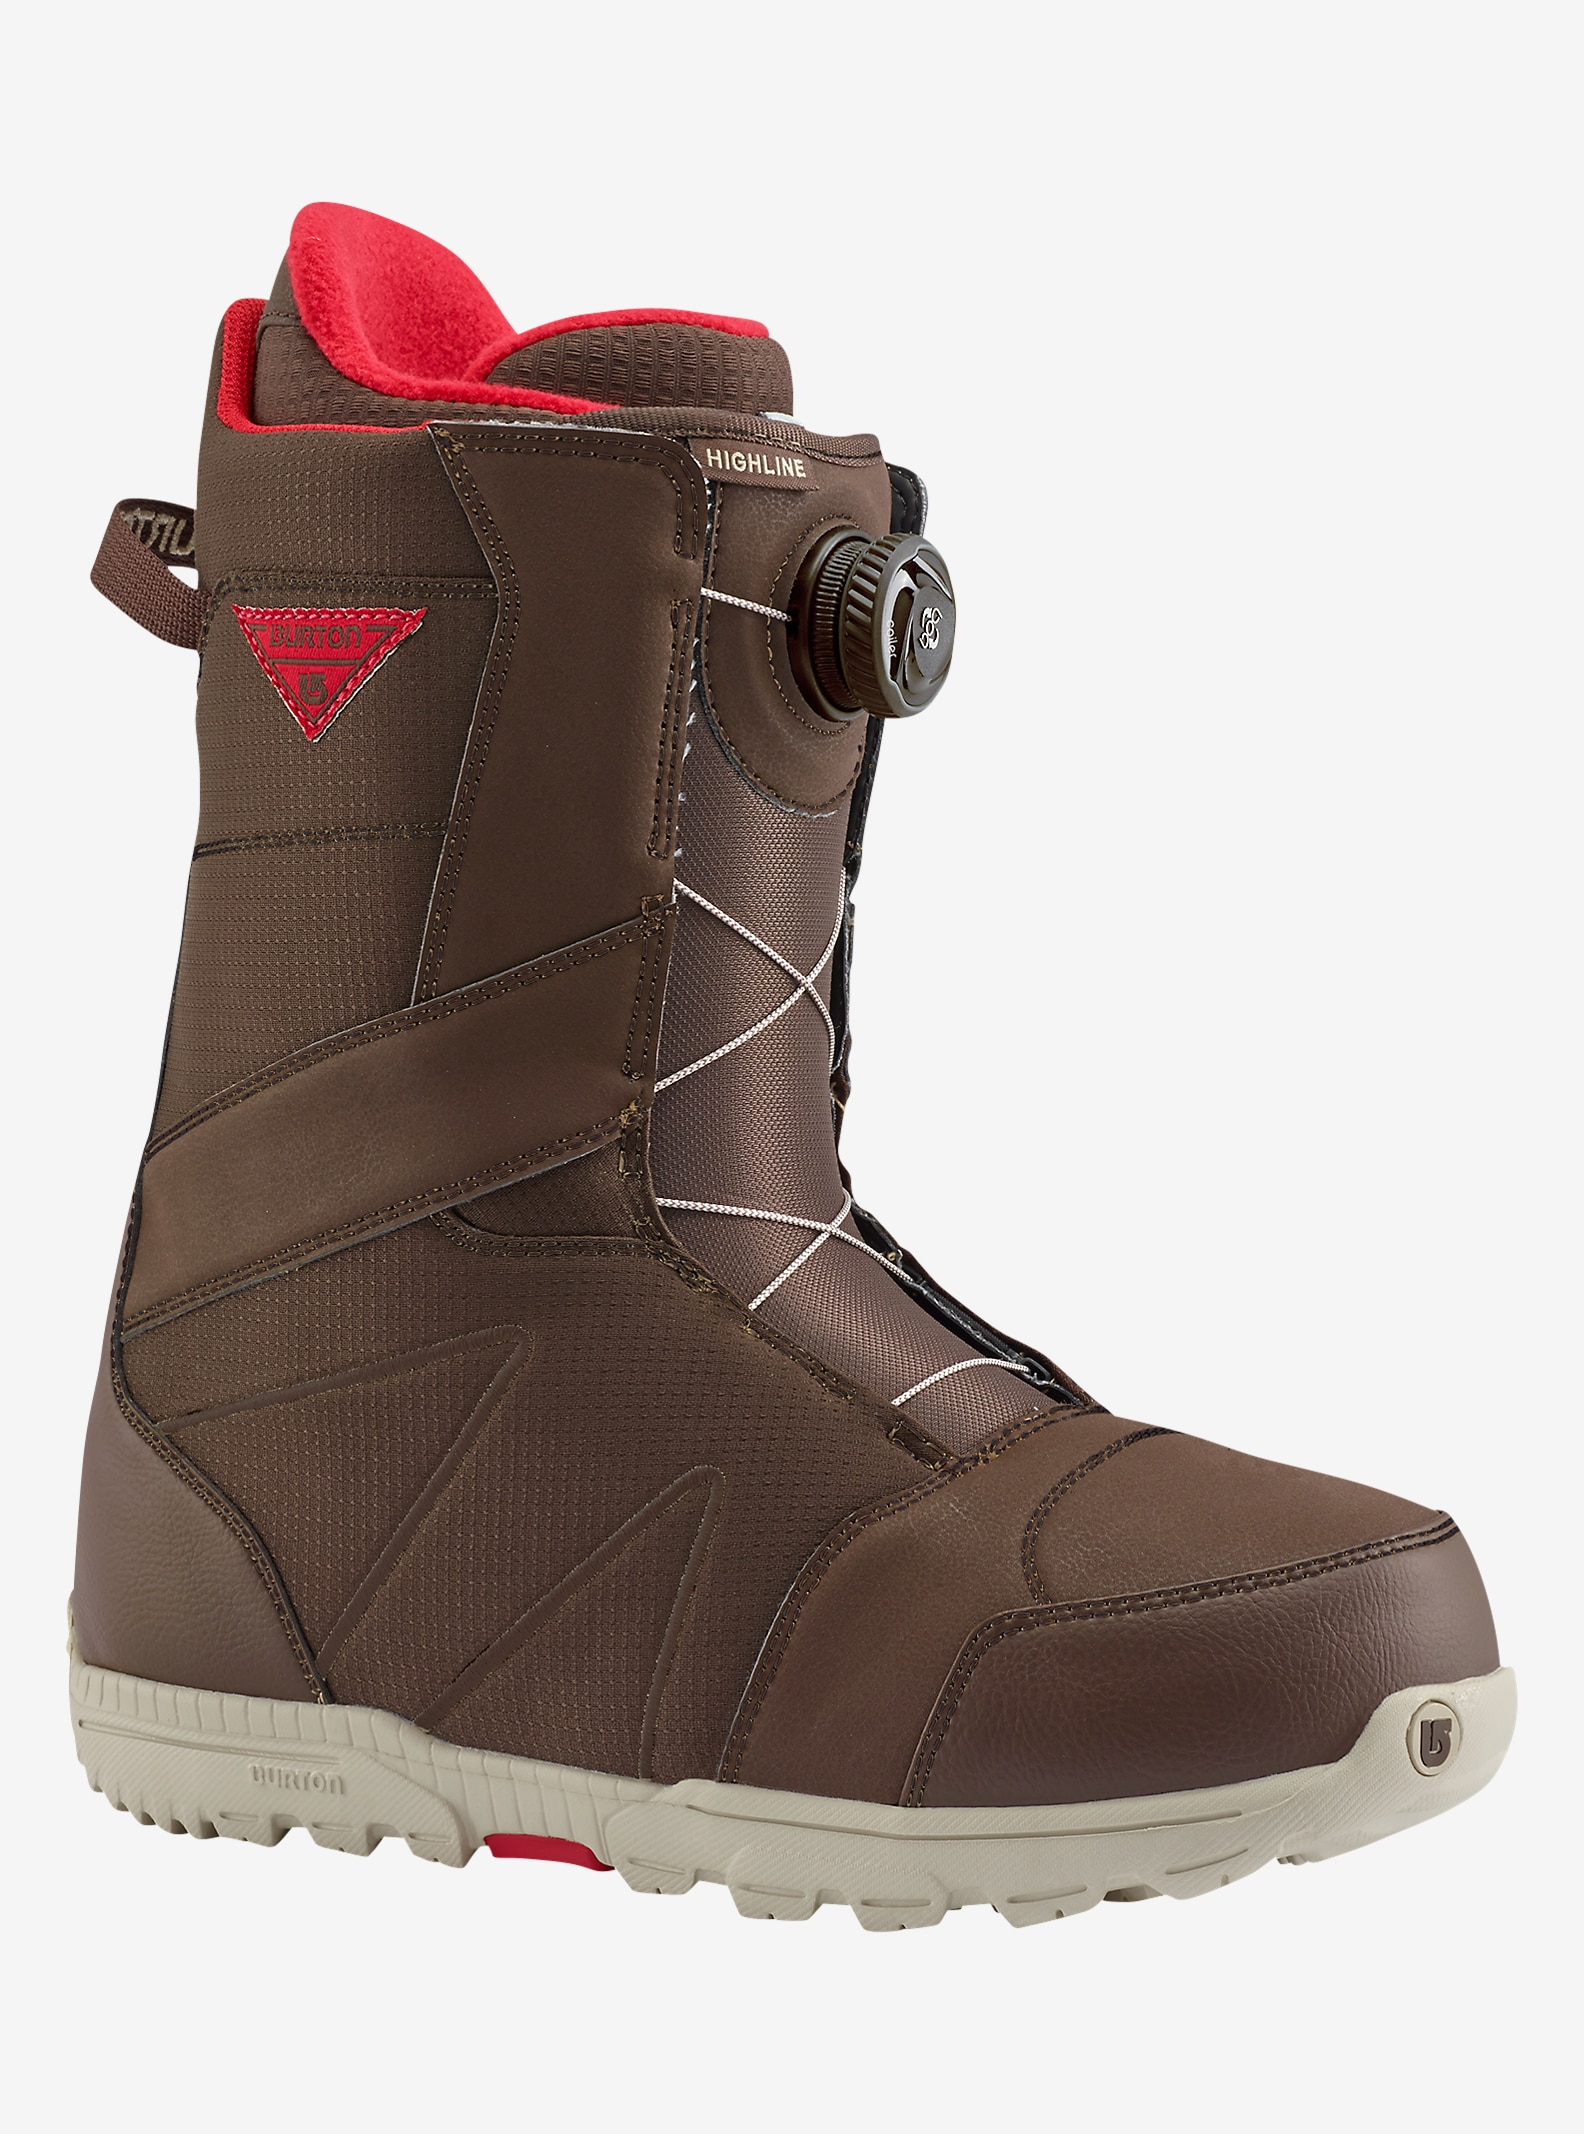 Burton Highline Boa® Snowboardboots angezeigt in Brown